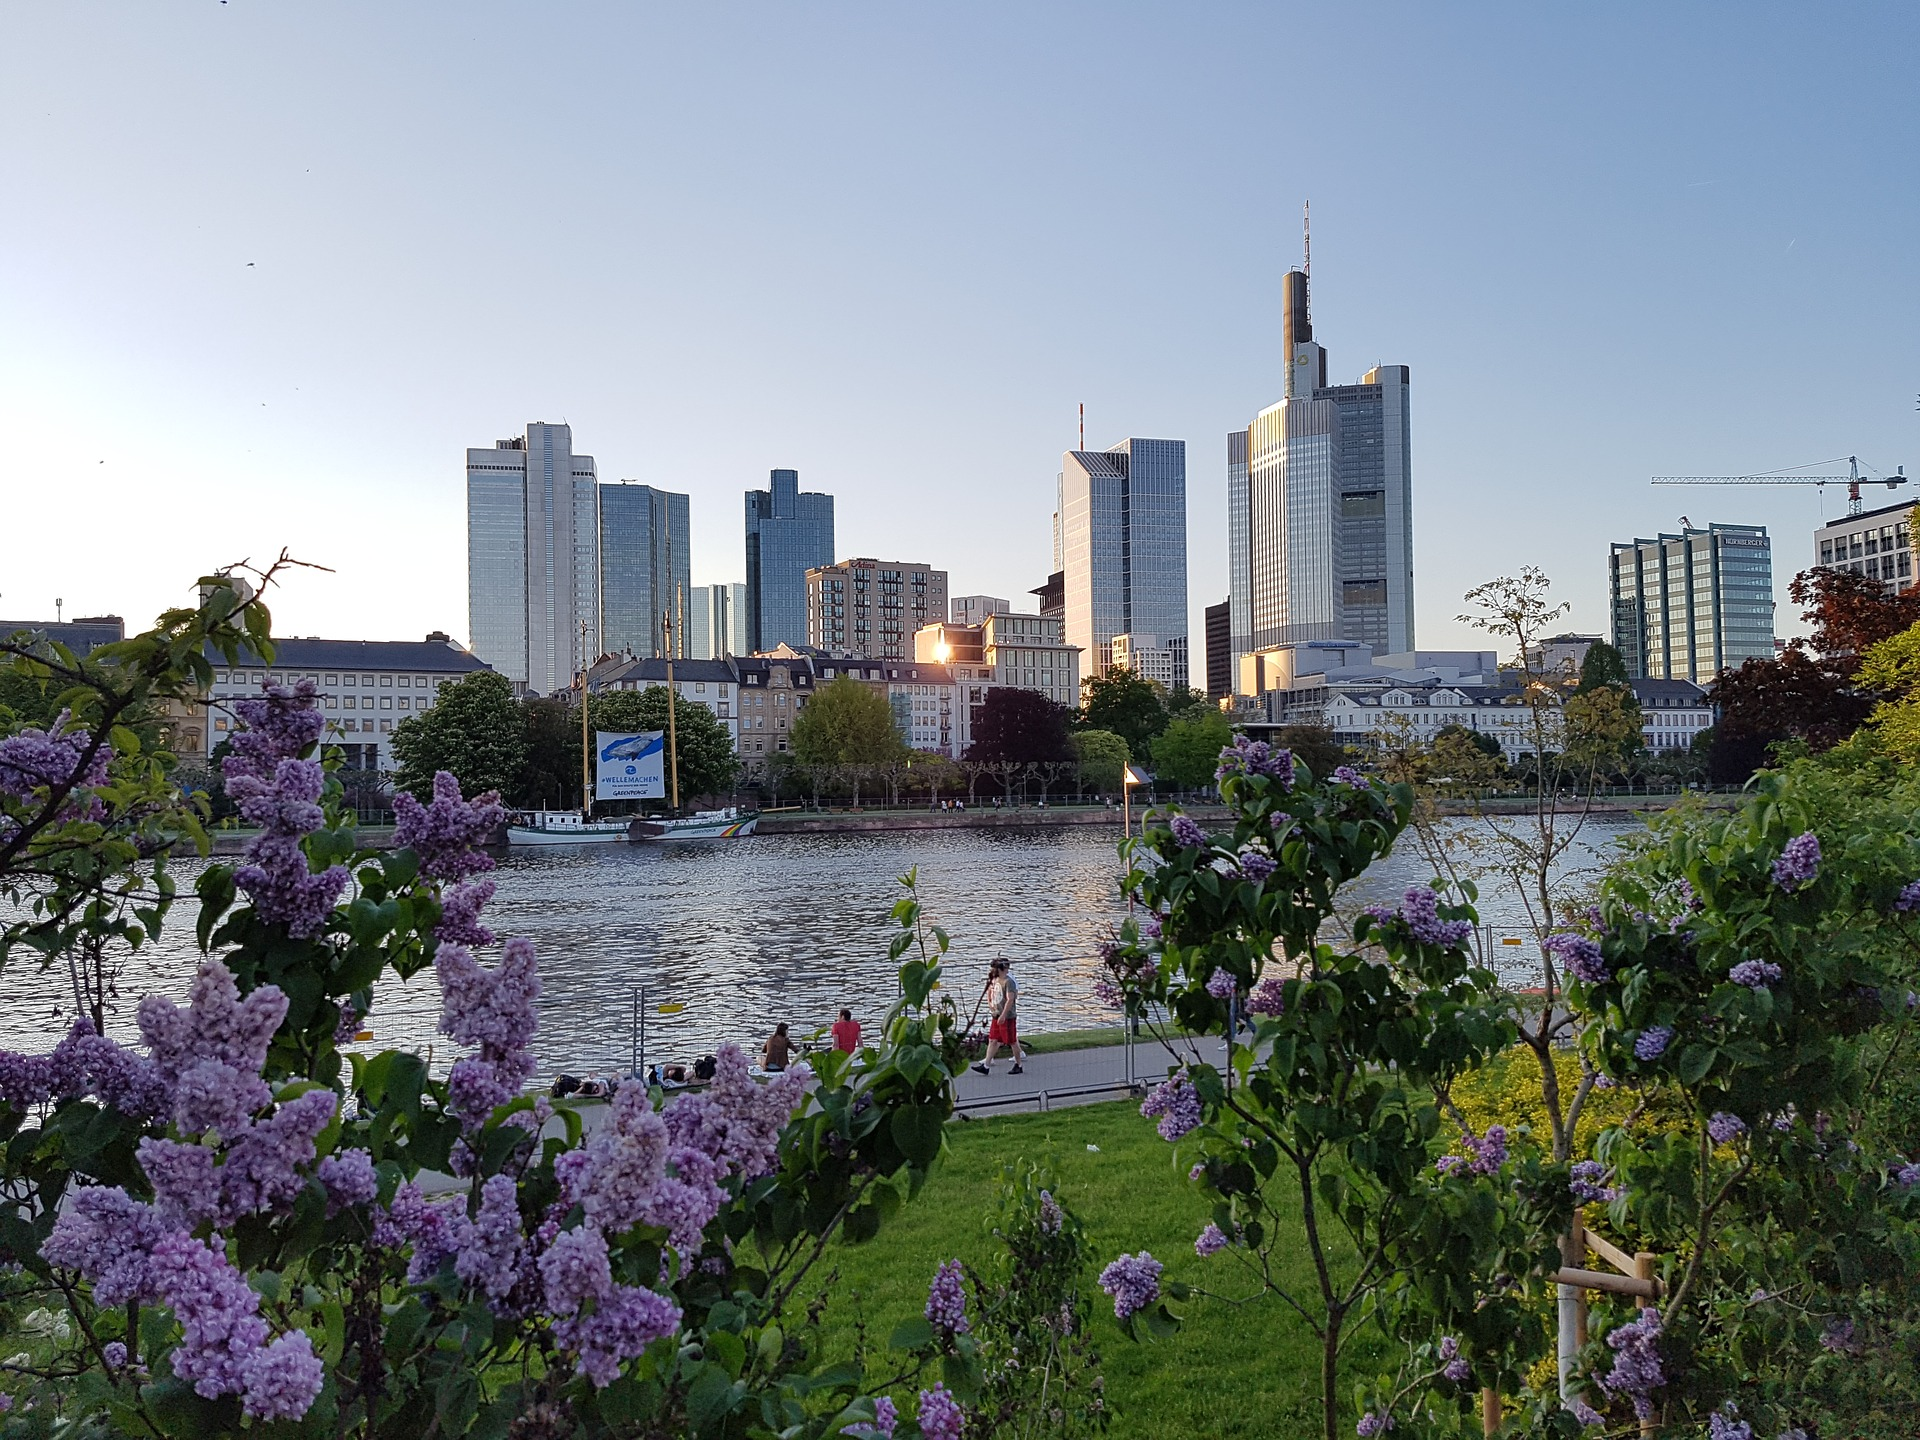 River Main, Frankfurt, Germany